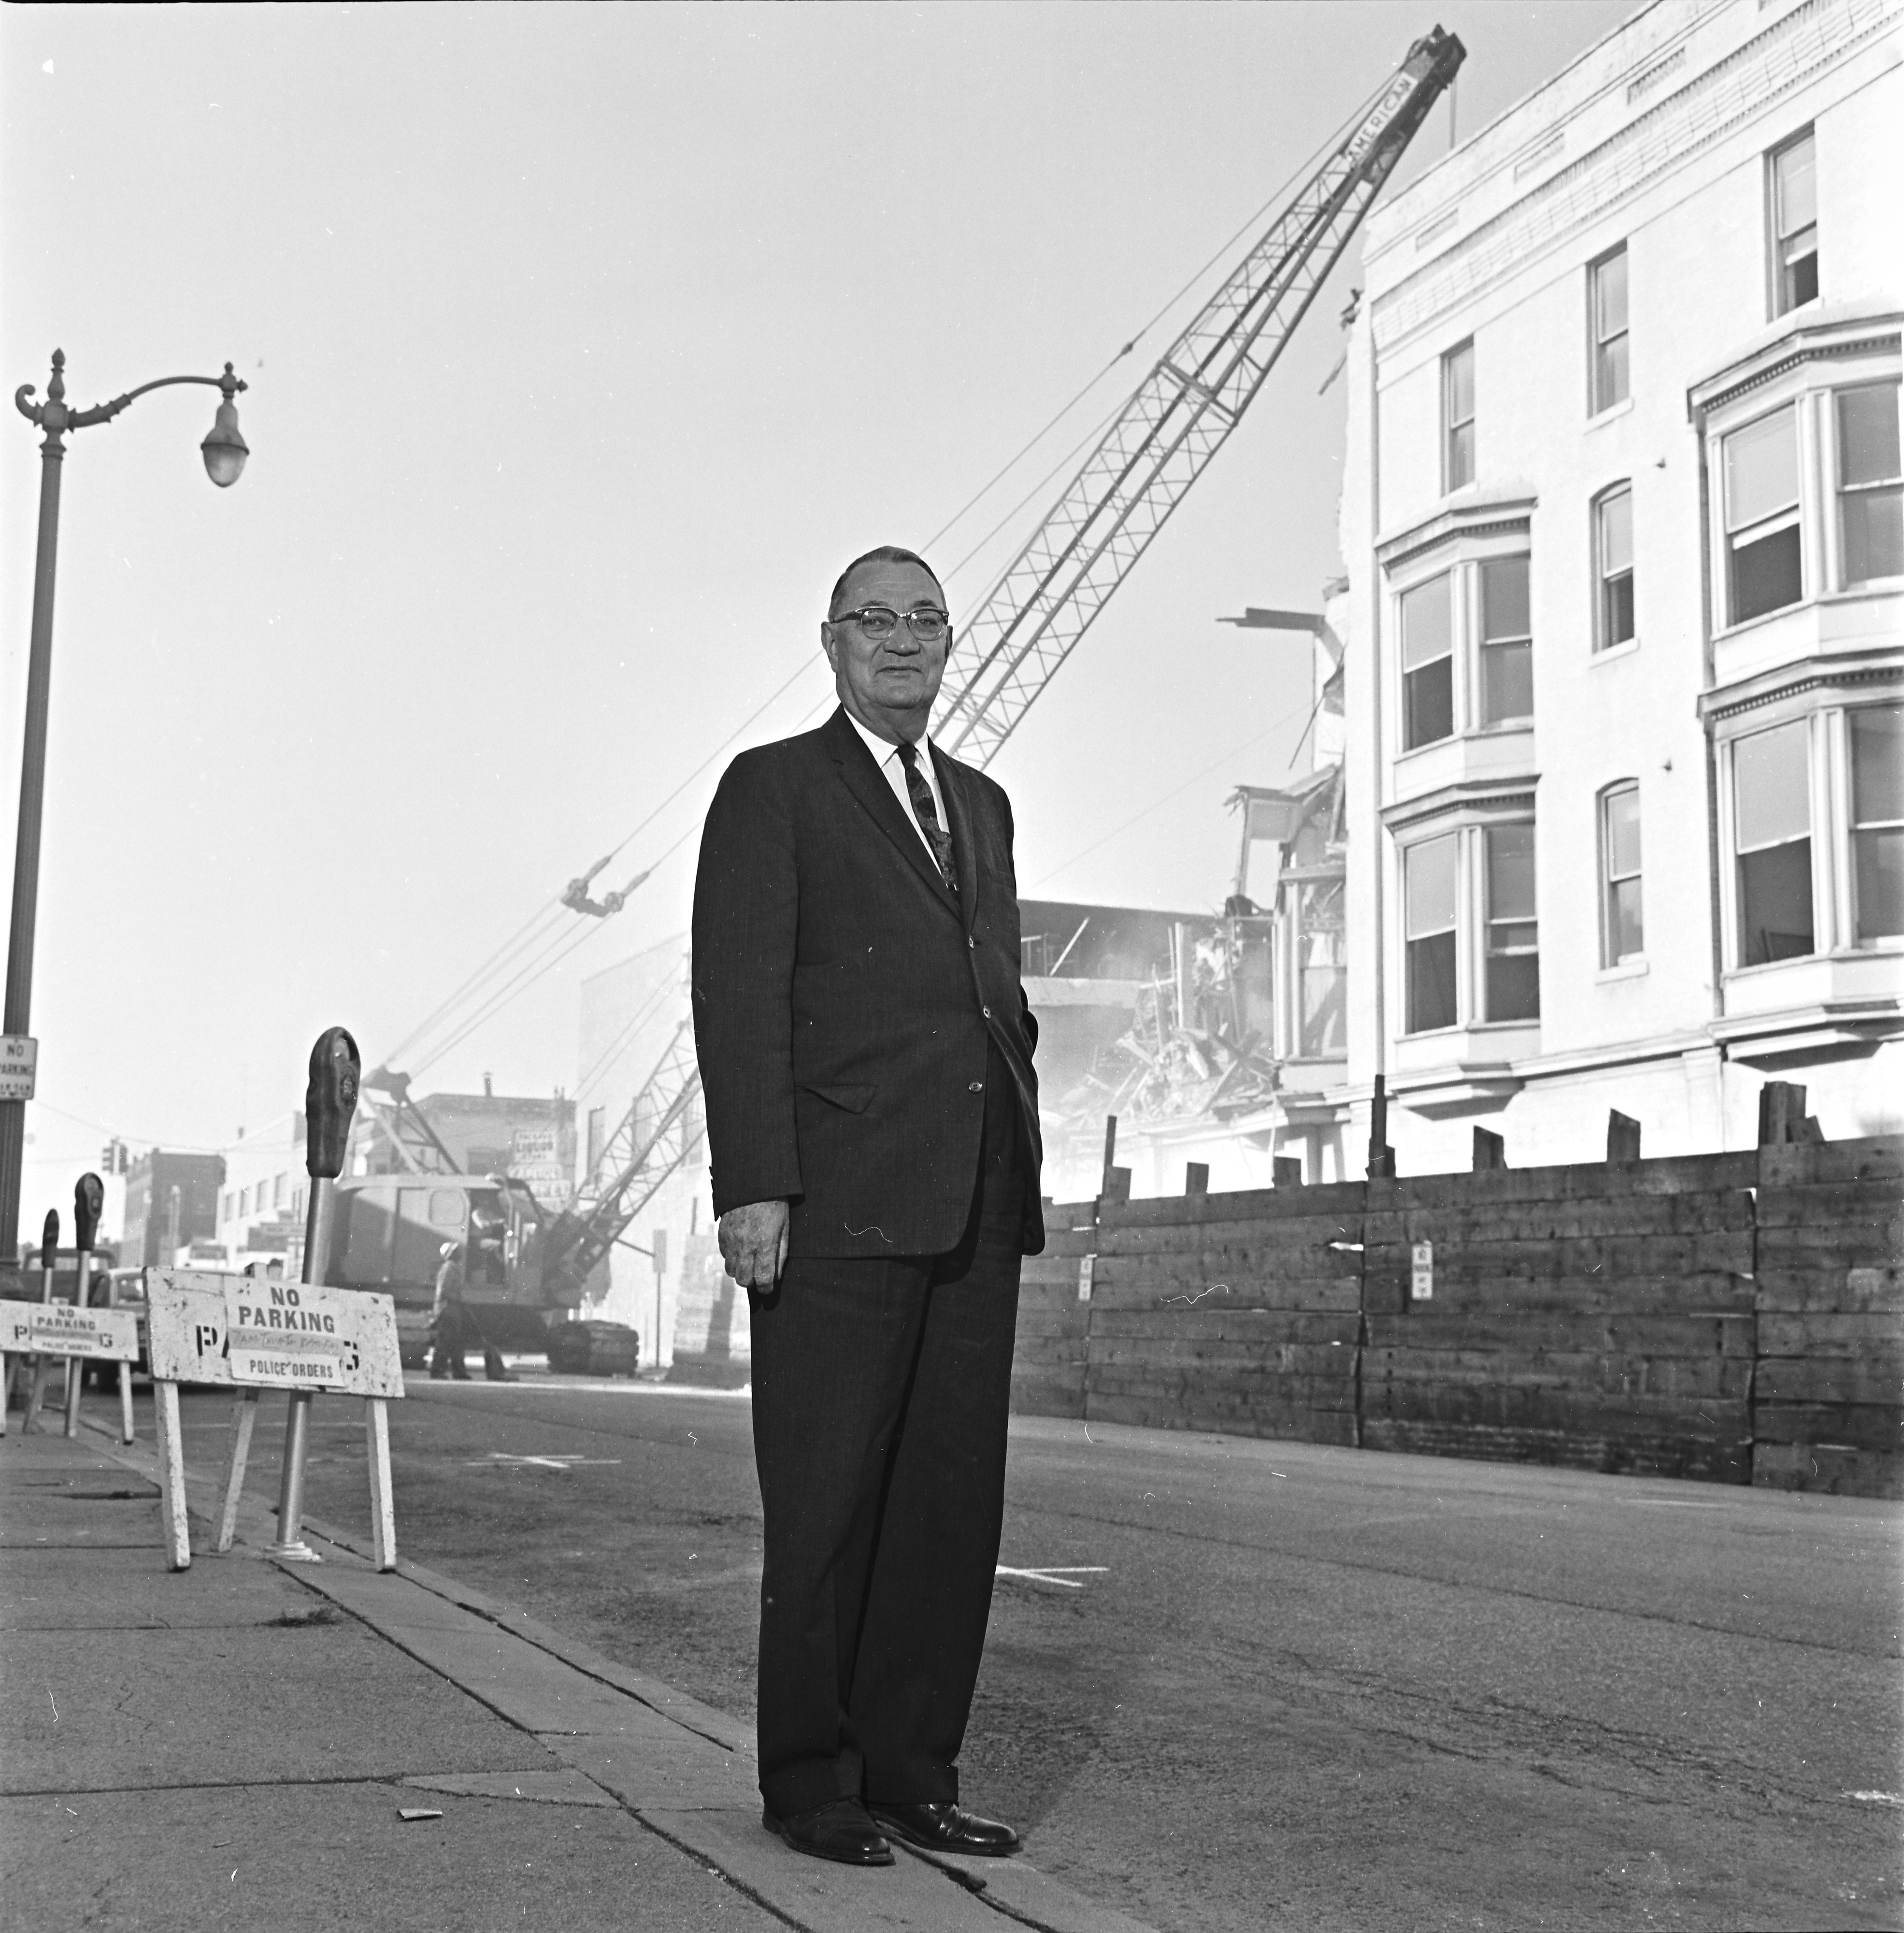 Mayor Cecil O. Creal at the demolition of Allenel Hotel, October 1964 image